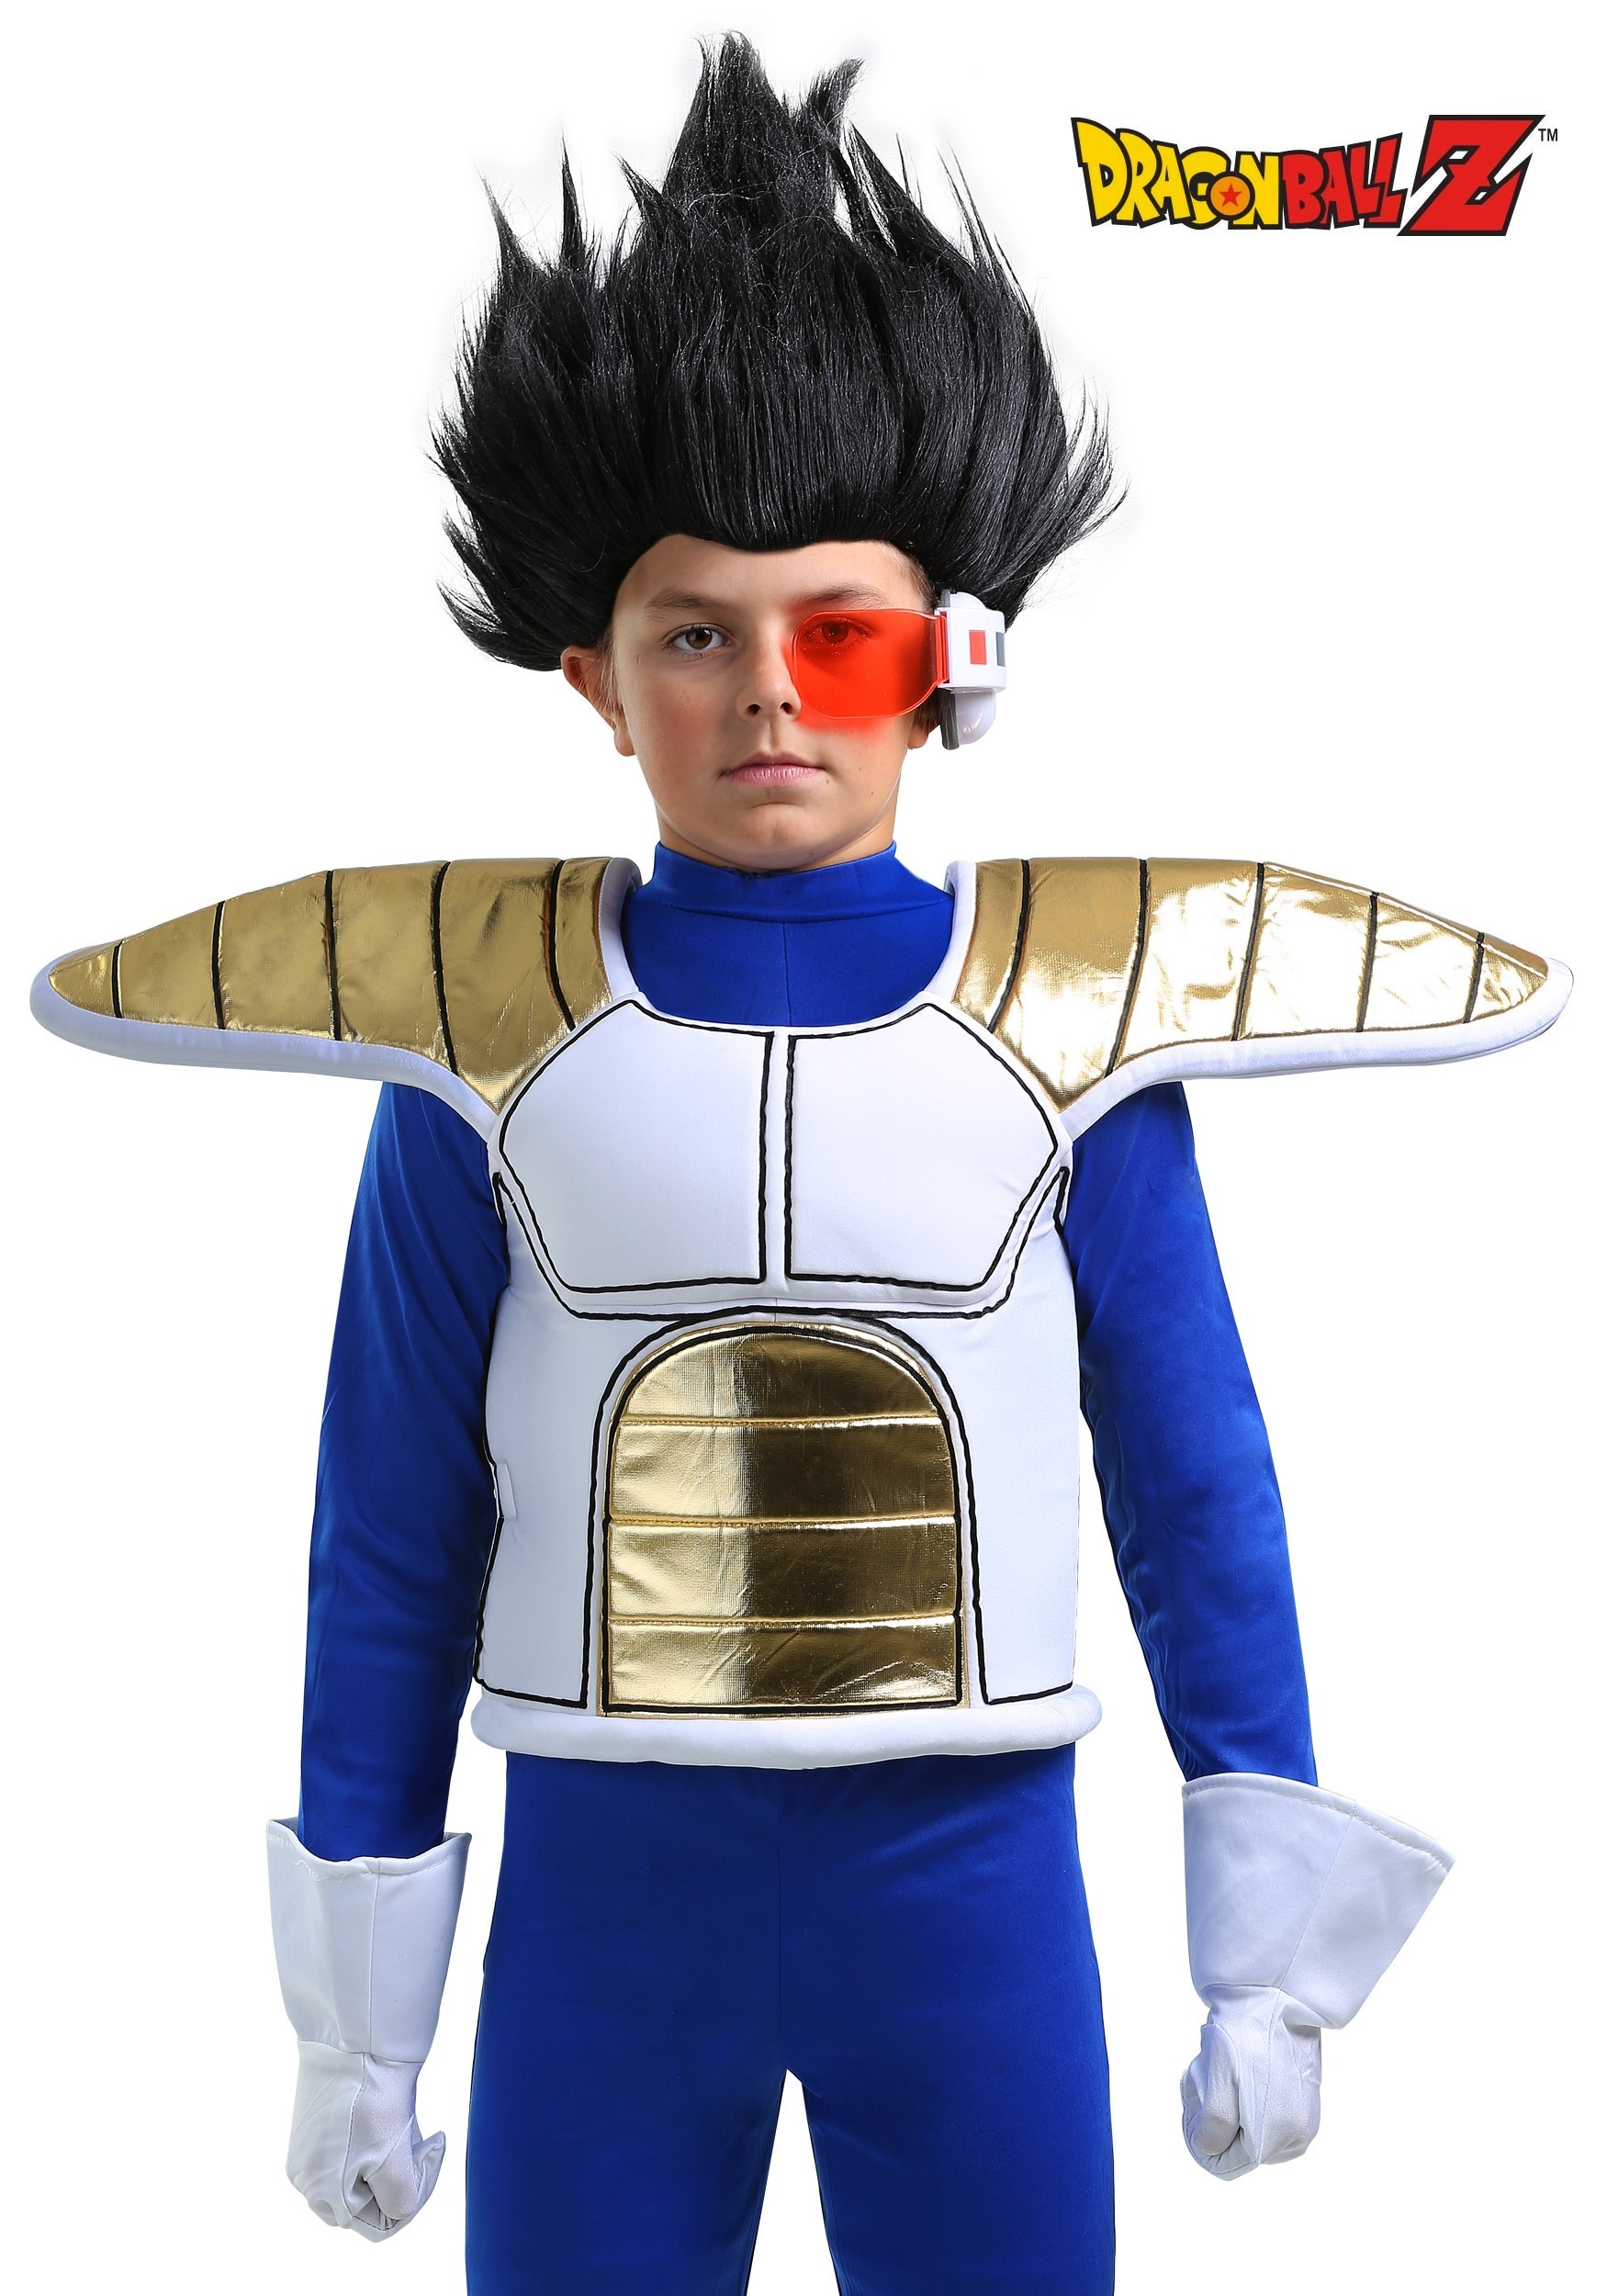 f5573d12a9092 Dragon Ball Z Costumes - HalloweenCostumes.com